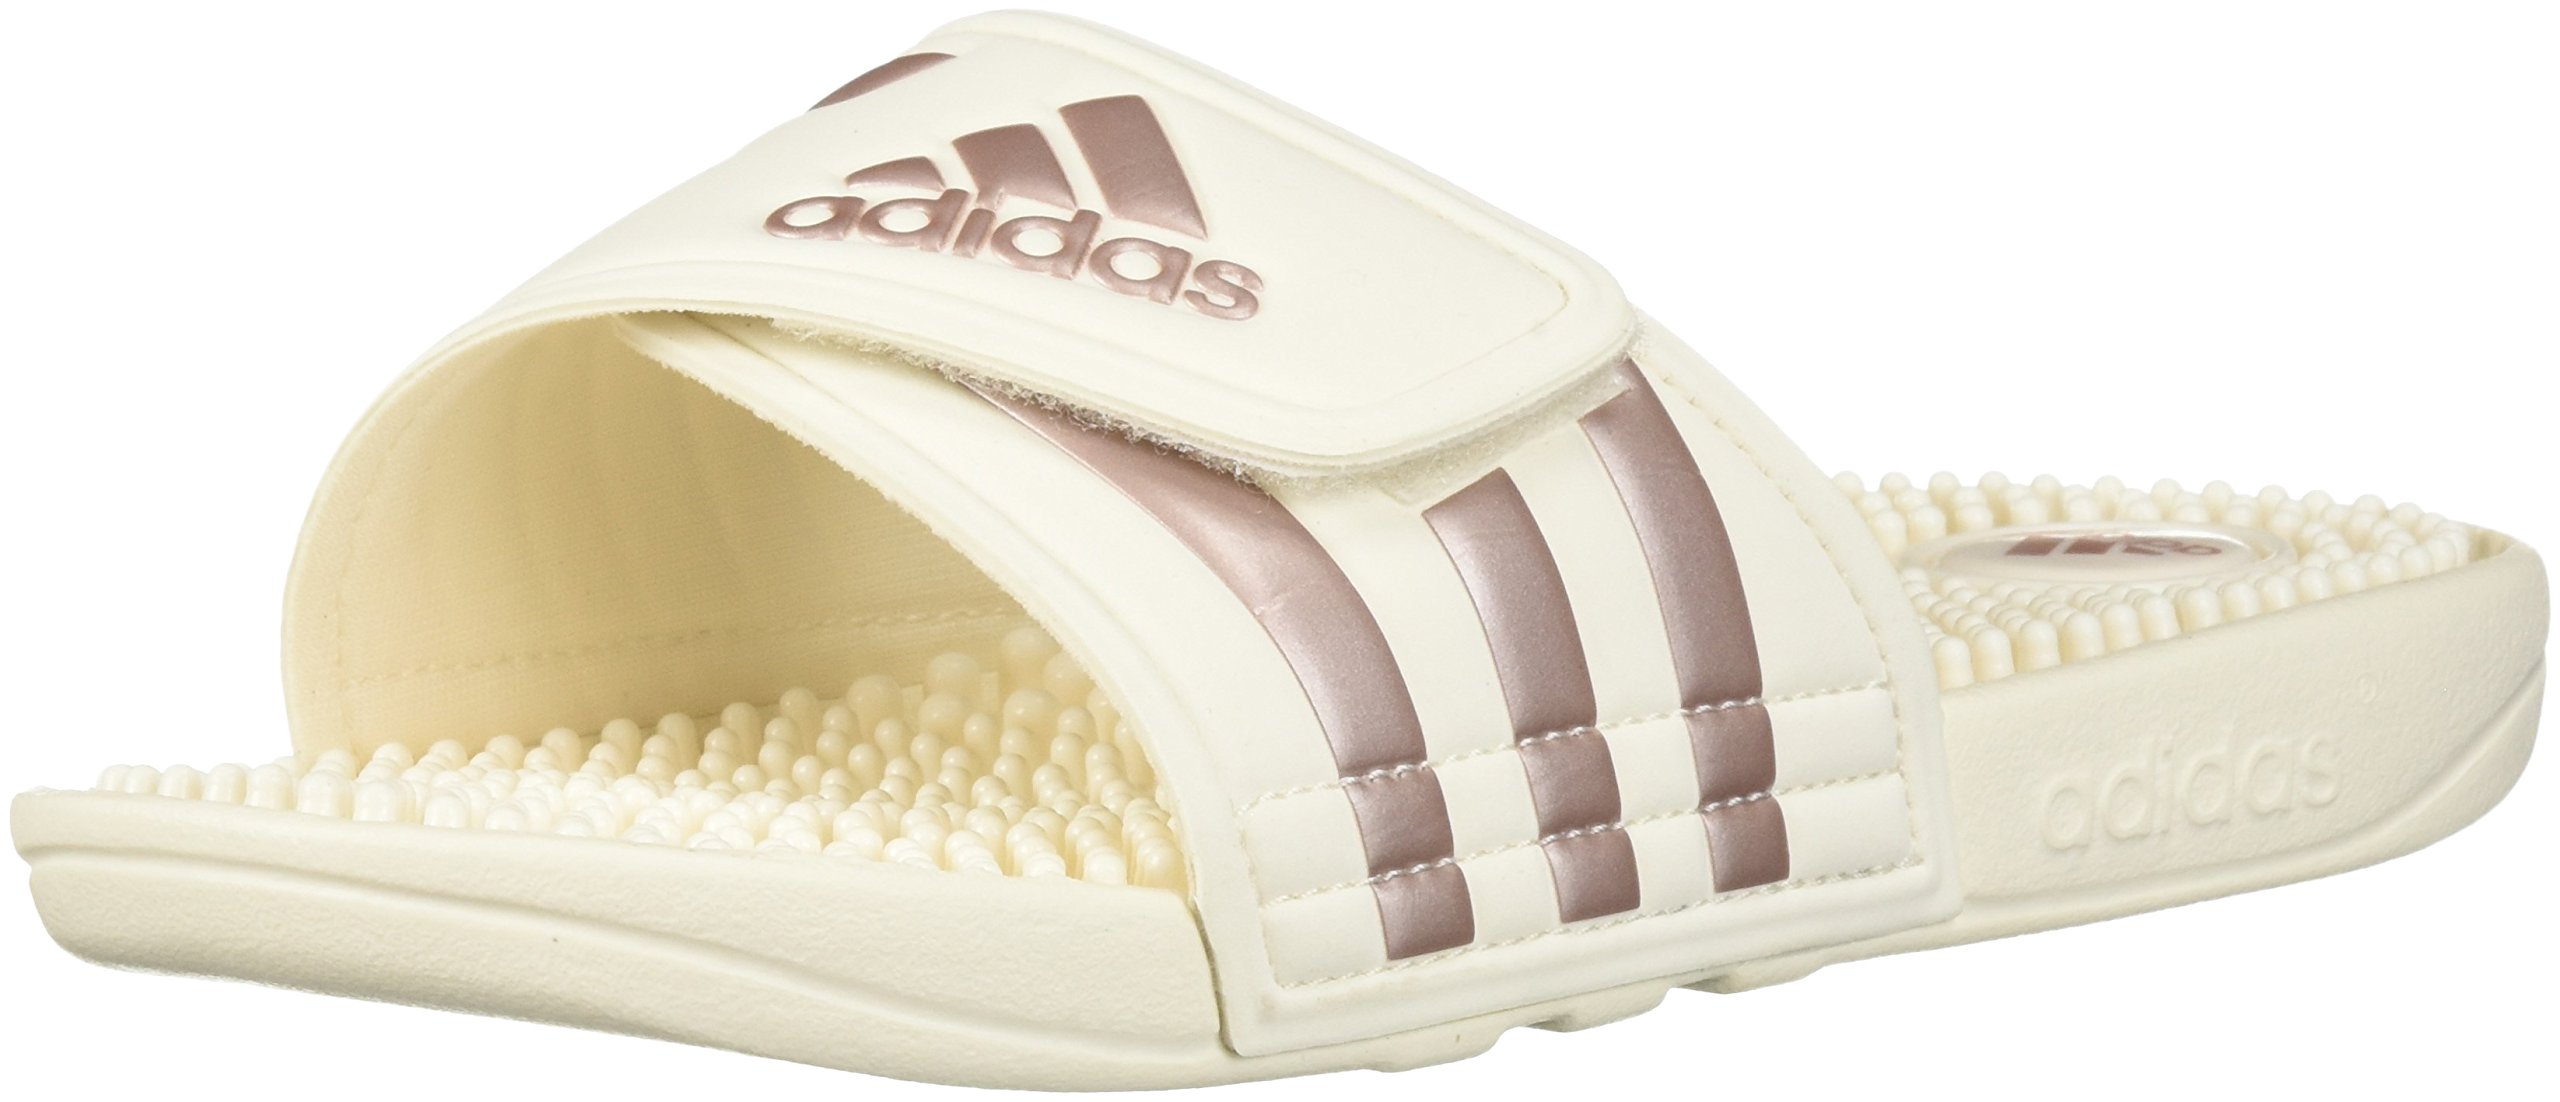 adidas Women's Adissage Slide Sandal, Cloud White/Vapour Grey Metallic/Cloud White, 12 M US